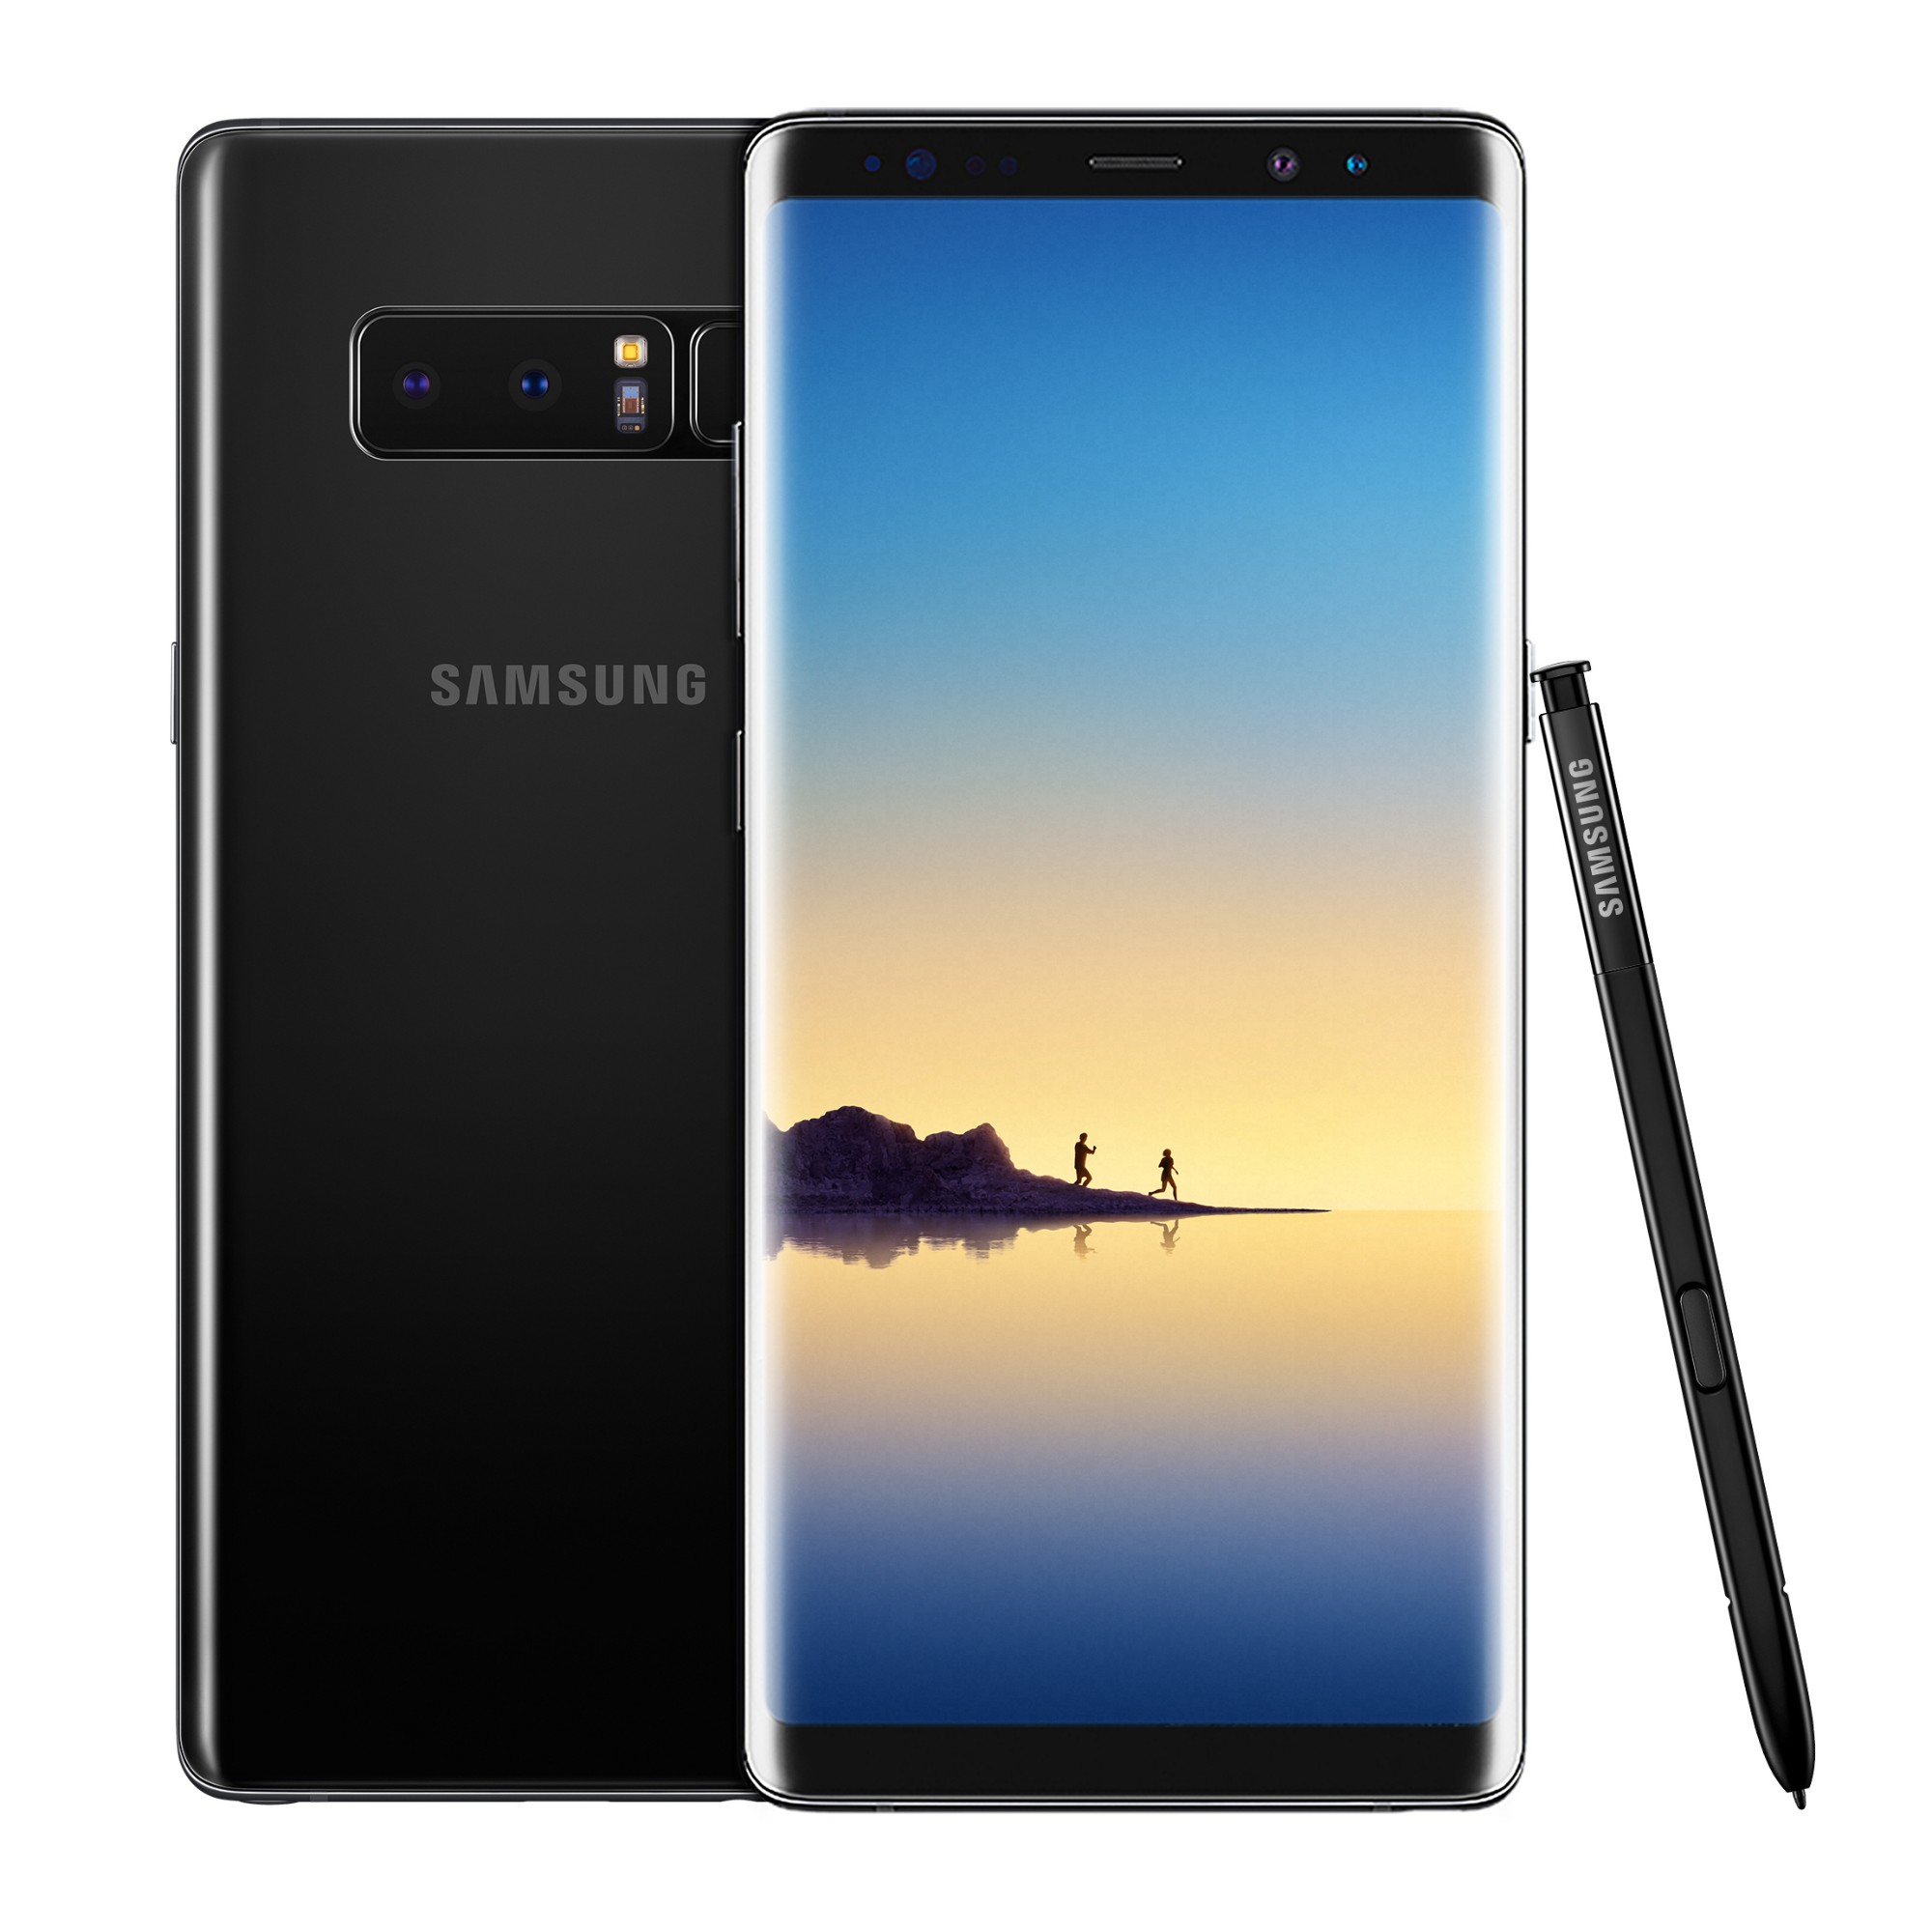 "Samsung Galaxy Note8 SM-N950F 16 cm (6.3"") 6 GB 64 GB Single SIM 4G Black 3300 mAh"